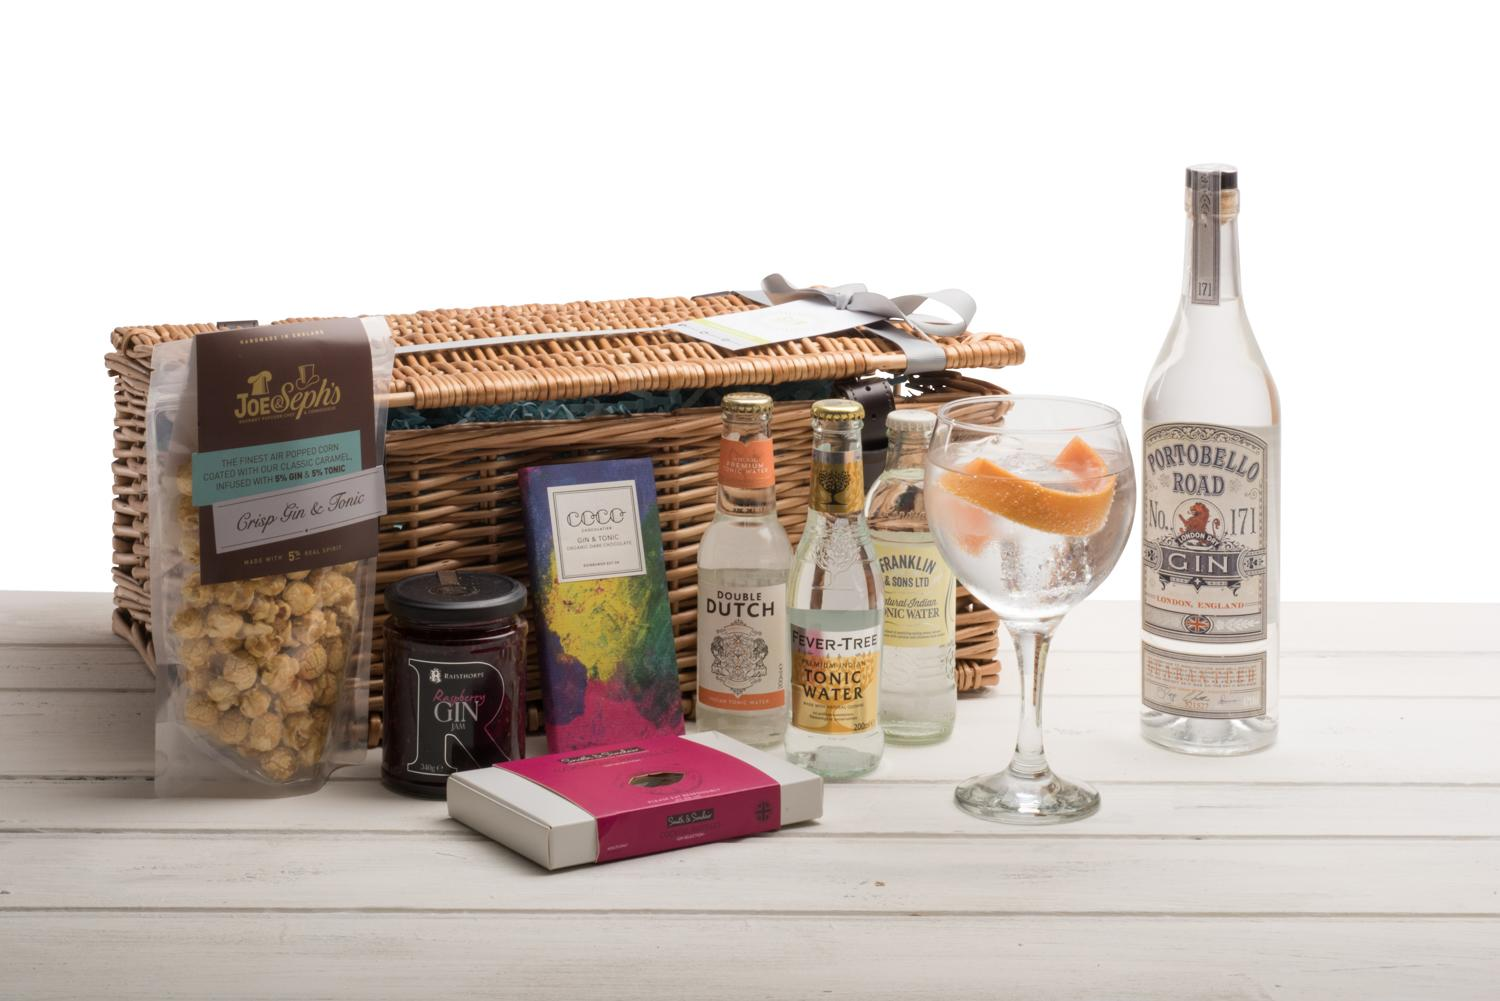 Navy Strength Portobello Road Gin Hamper